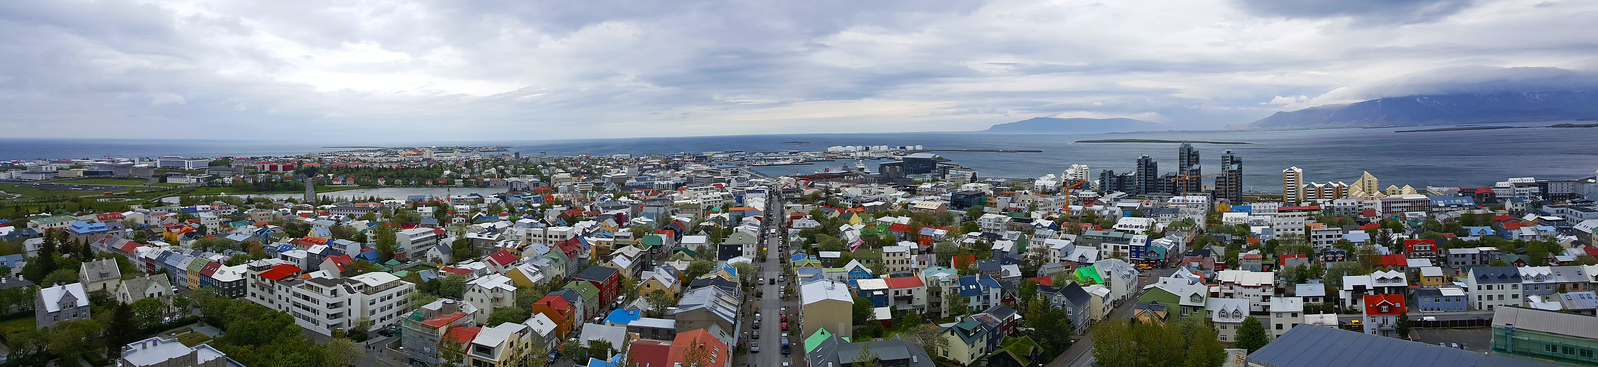 Views of Reykjavik from the top of Hallgrimskirkja Church